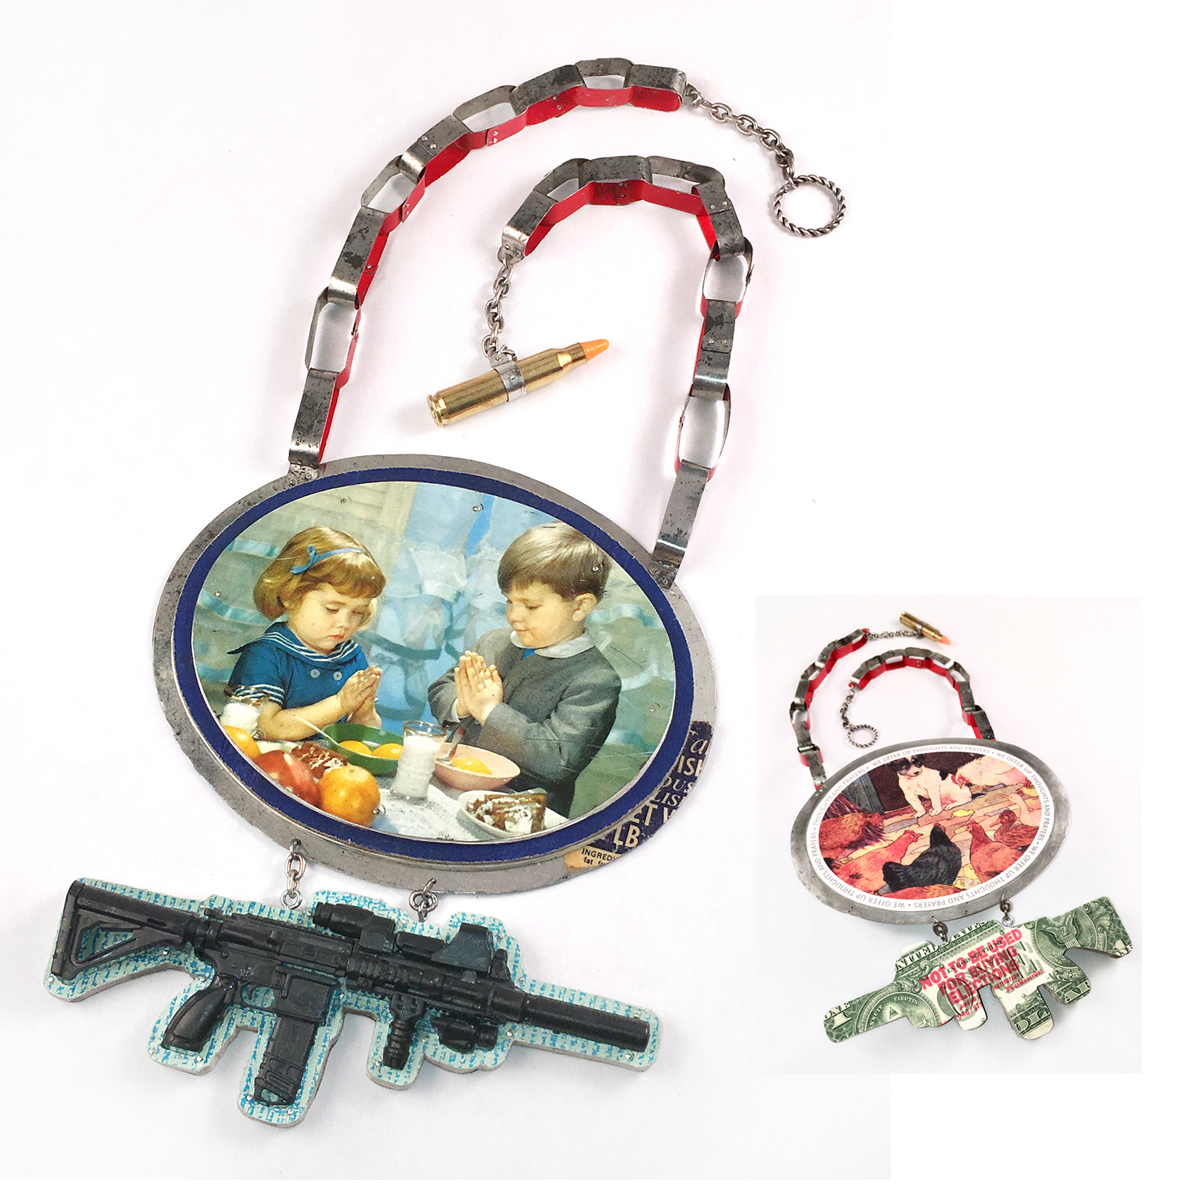 Necklace/breastplate statement piece about gun violence